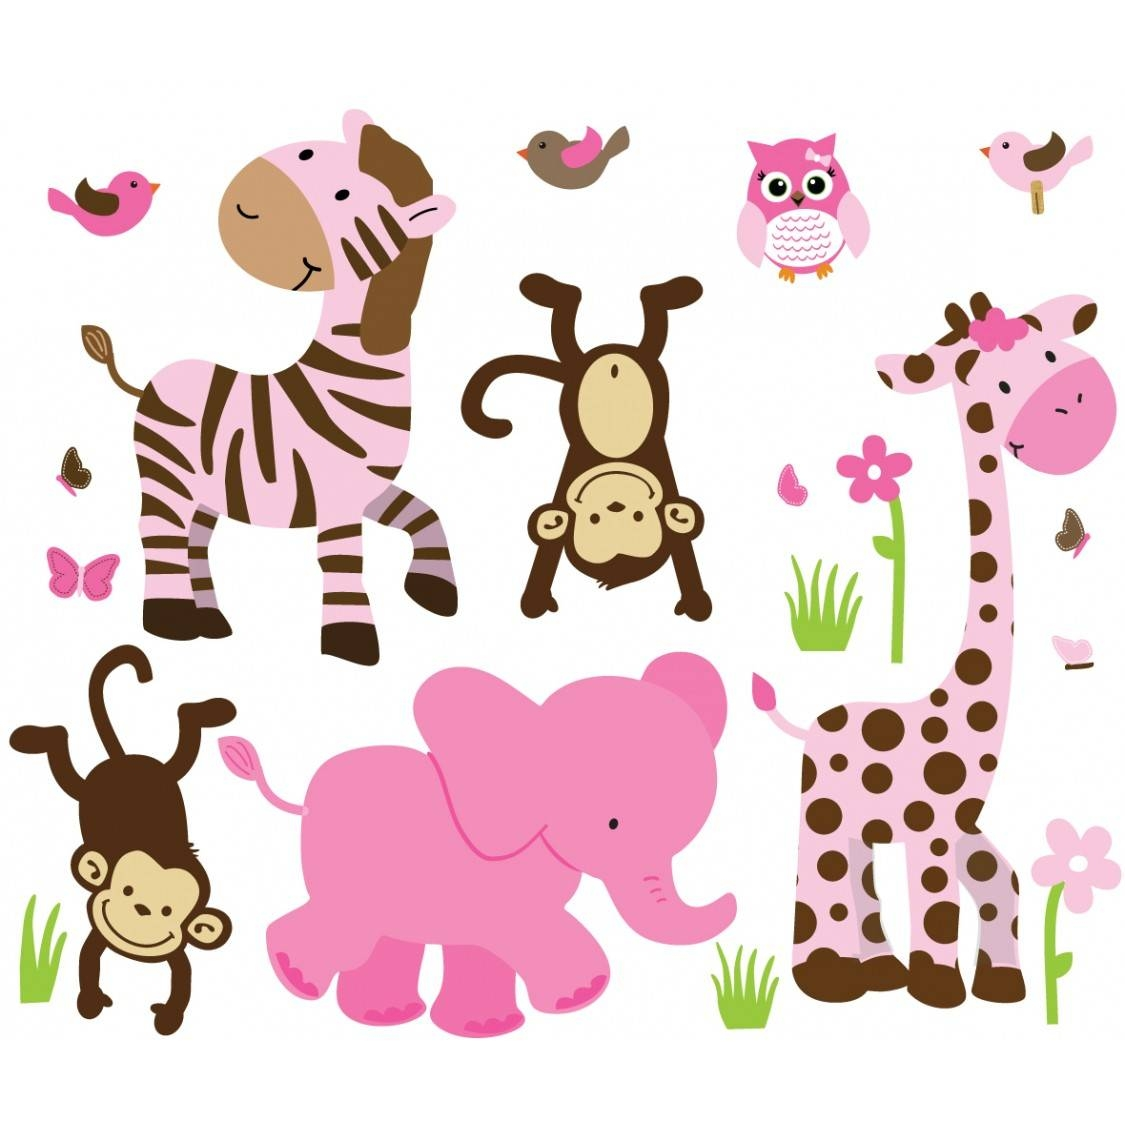 Pink & Green Jungle Nursery Wall Decals For Children Pertaining To Latest JungleAnimal Wall Art (View 17 of 20)